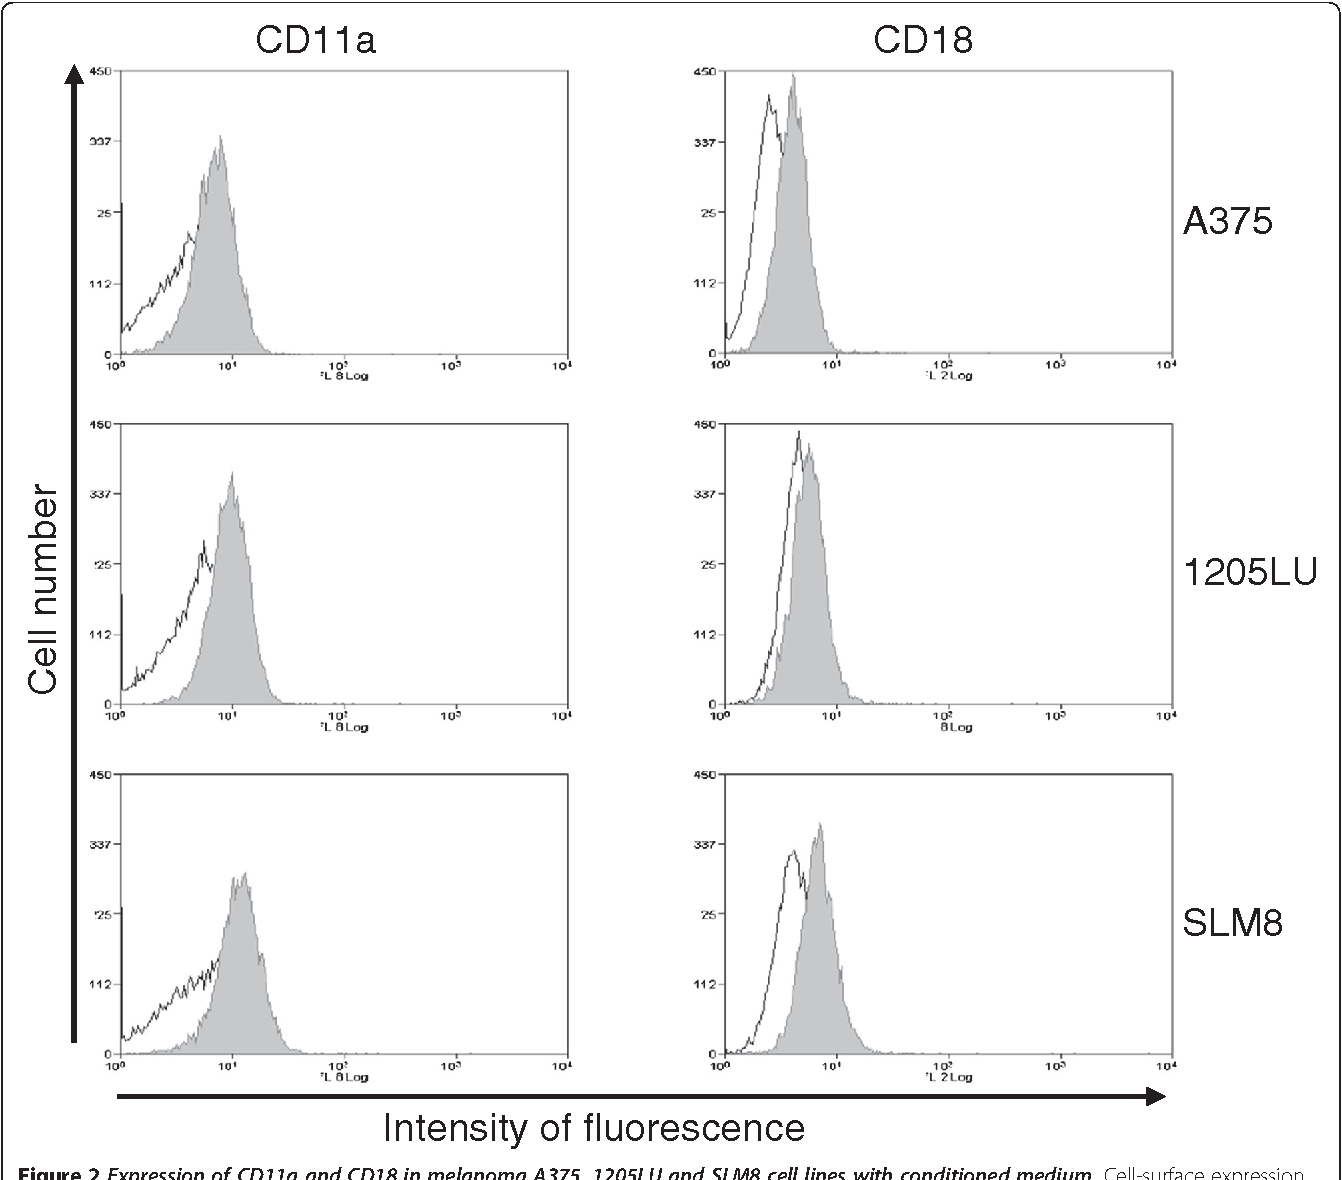 Figure 2 Expression of CD11a and CD18 in melanoma A375, 1205LU and SLM8 cell lines with conditioned medium. Cell-surface expression of CD11a and CD18 on indicated melanoma cell lines treated for 24 hrs with HUVEC conditioned medium was analyzed by flow cytometry. Isotypic controls are represented as empty histograms and specific antibody-labelling is displayed as shaded histograms. Histograms obtained with cells incubated with FCS-complete medium and labeled with specific antibodies, which overlap with the isotypic control are not shown. Data from obtained with 3 independent experiments.